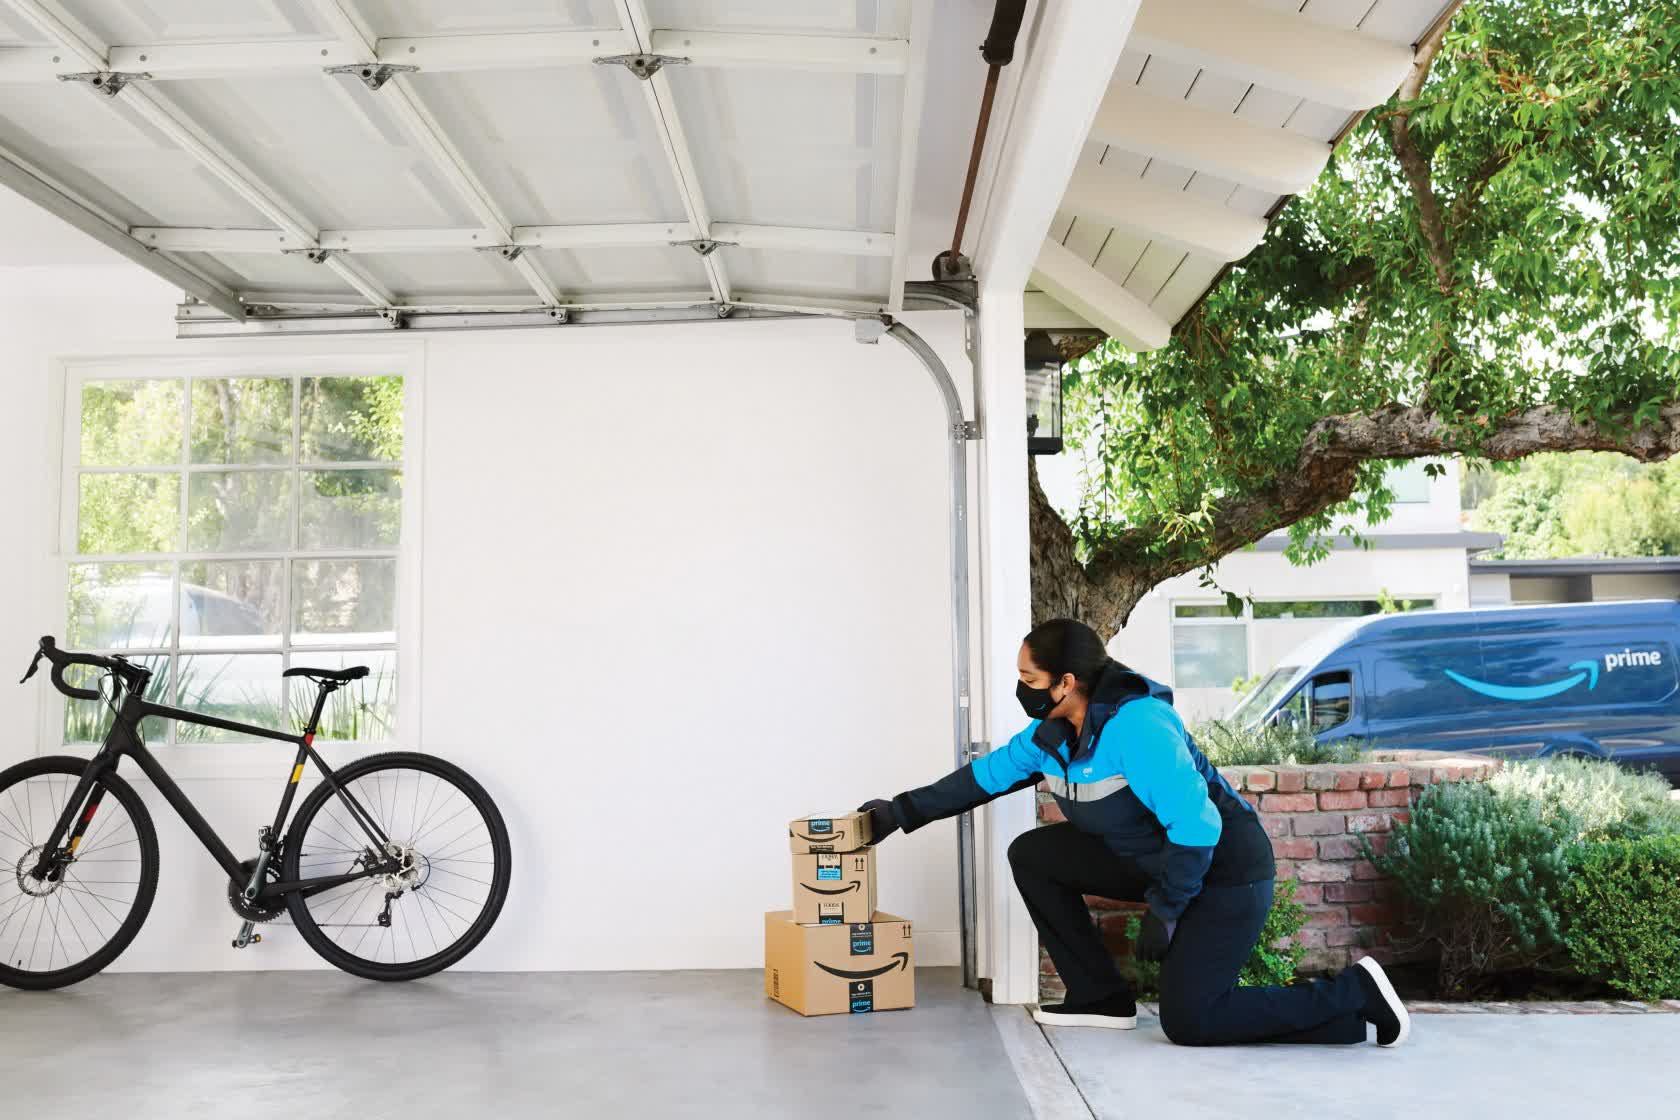 Amazon now offers in-garage delivery across 4,000 US cities